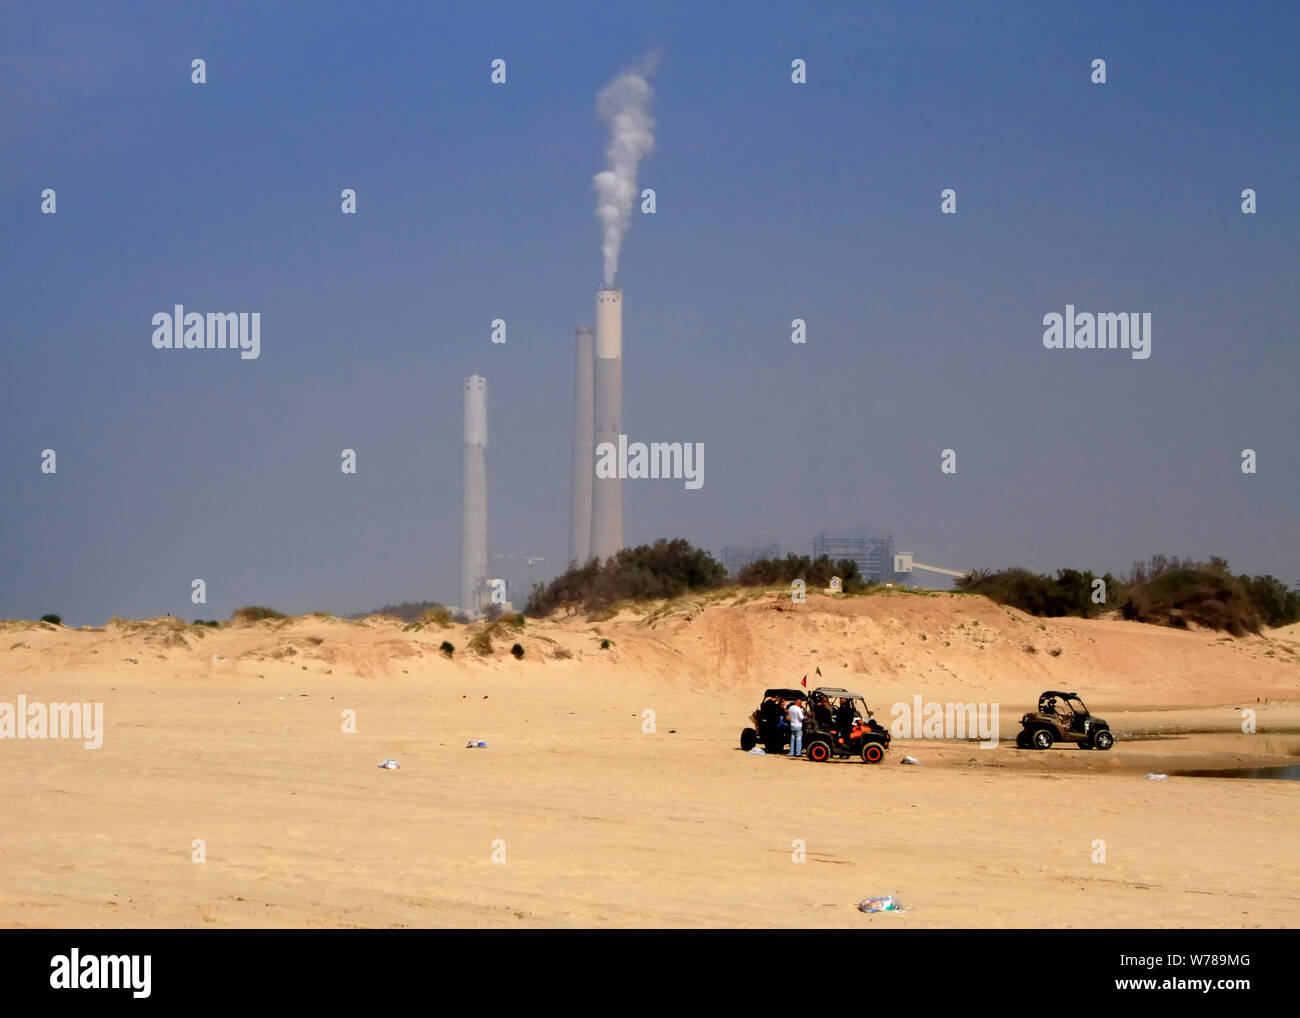 Dune buggies on Zikim Beach on Mediterranean coast in Israel sit in front of the Rutenberg Power Plant smoke stacks. Stock Photo